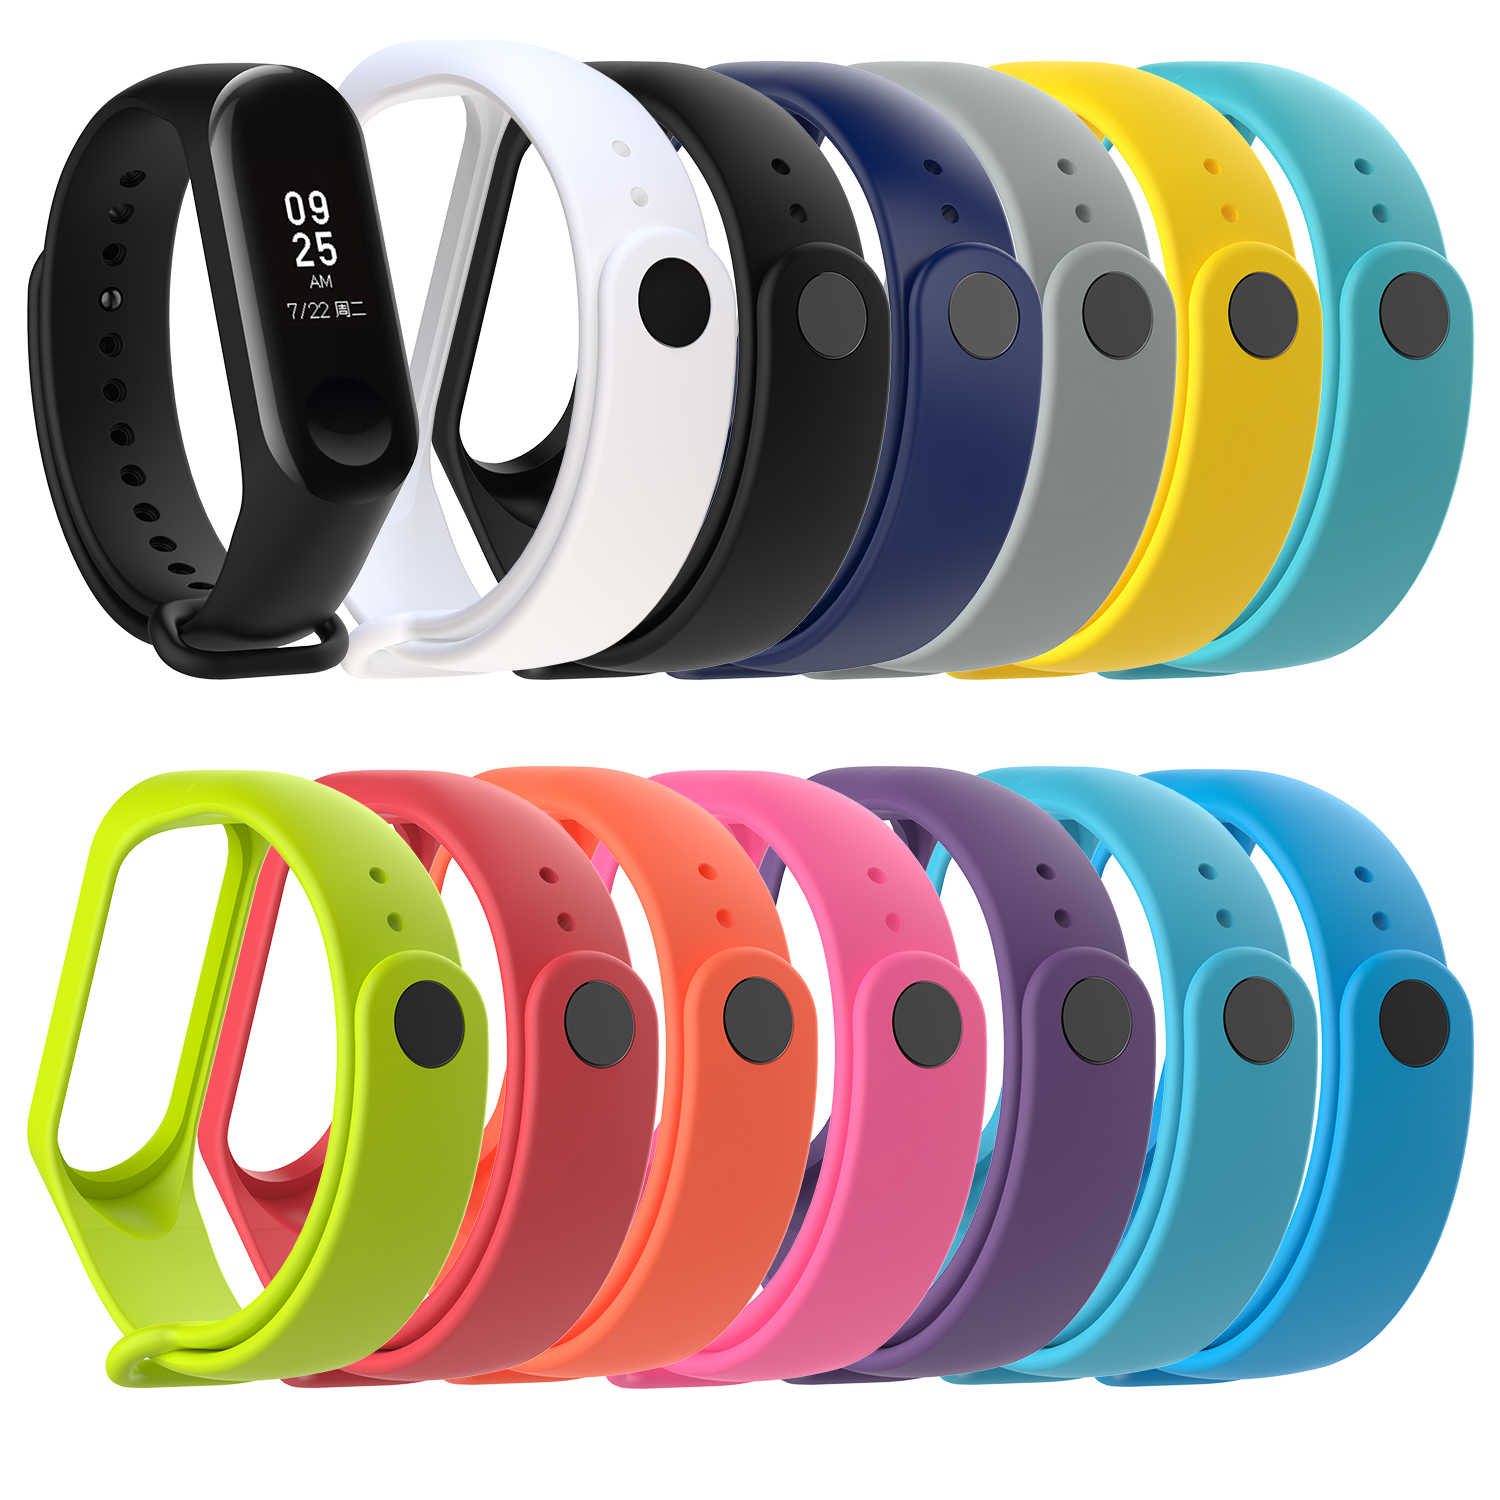 Silicone Strap For Xiaomi Mi Band 3 4 Colorful Straps For Xiaomi Miband 4 Smart Bracelet Replacement Strap For Mi Band 4